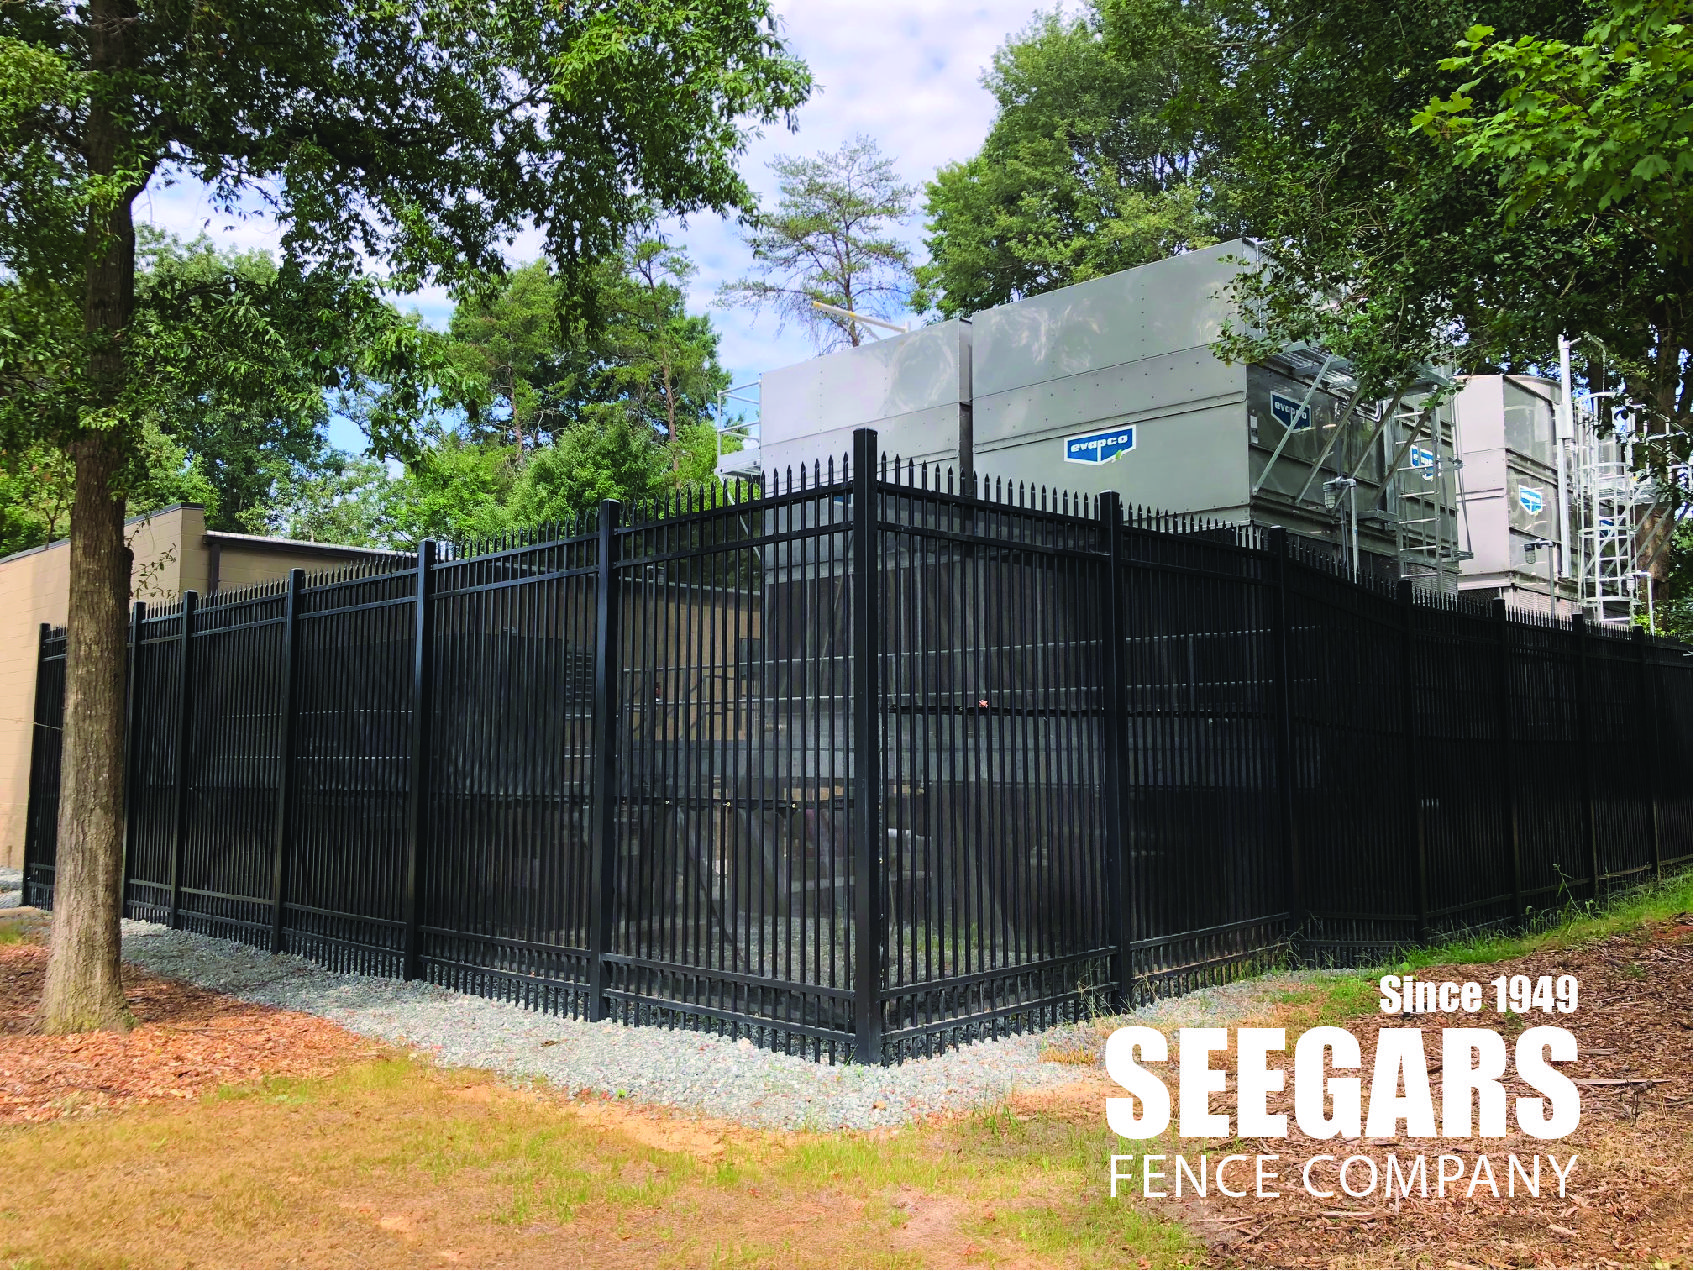 12 Ft Security Fence For Generators Seegars Fence Company Security Fence Fencing Companies Fence